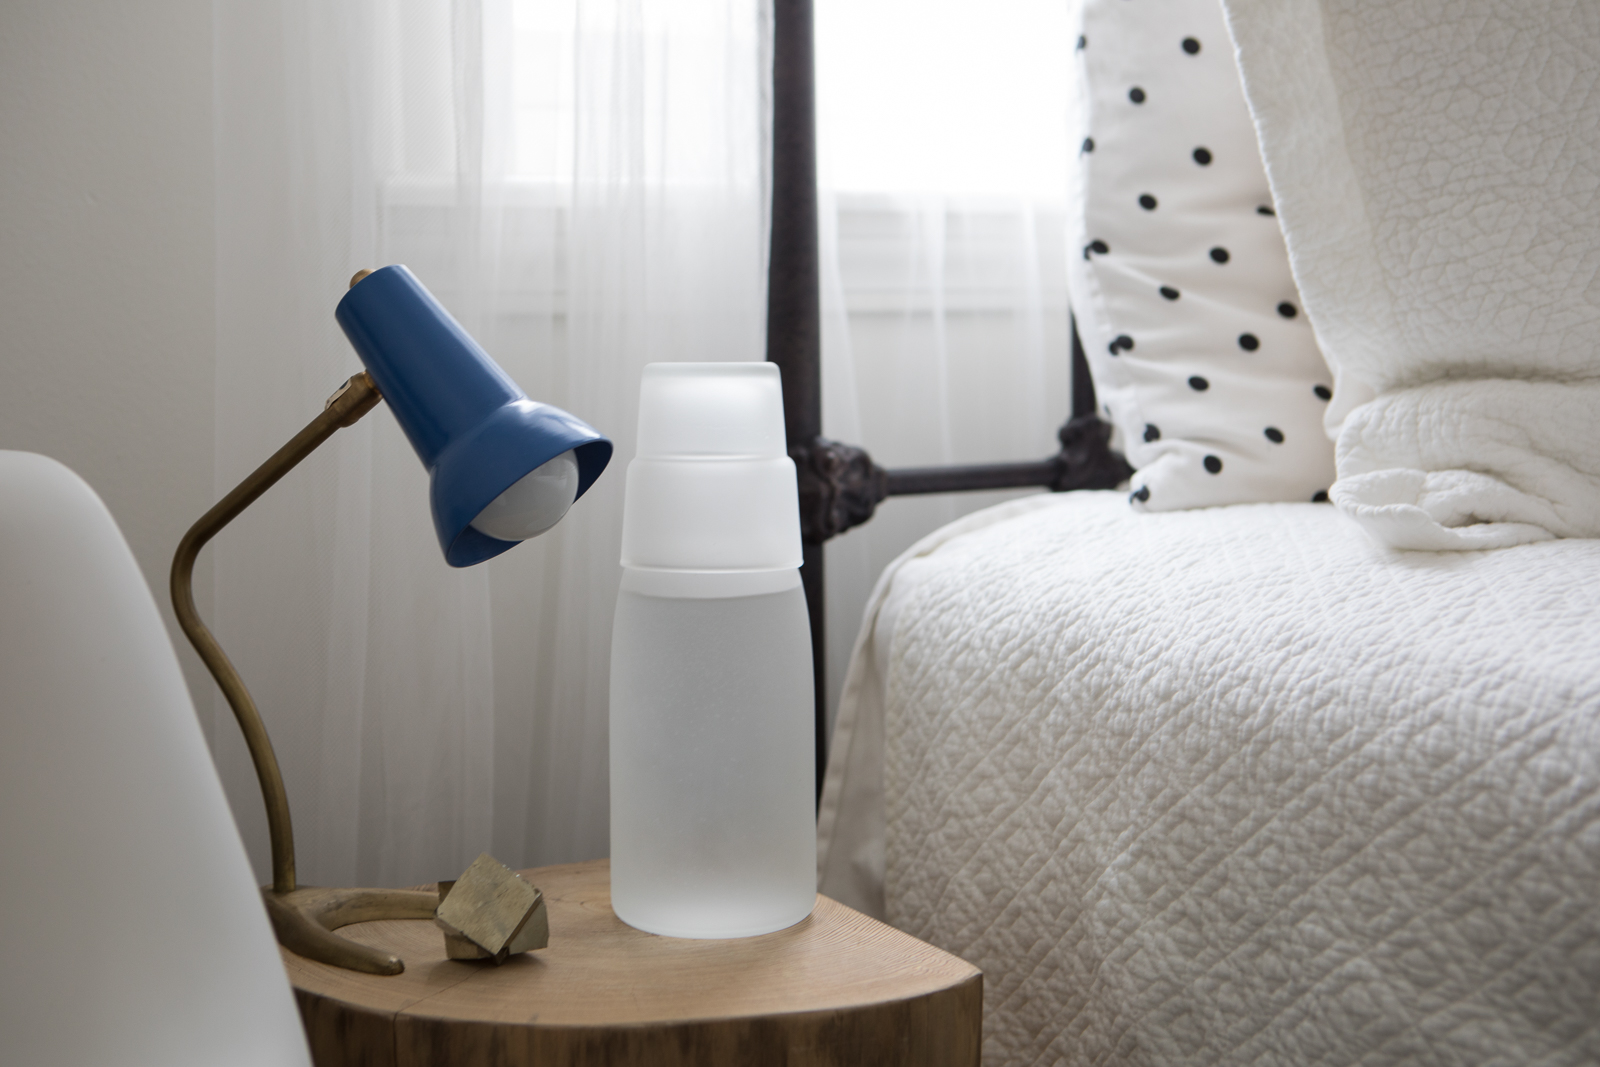 Stay hydrated - Life isn't all about booze. Pair a carafe and glass as a water decanter for your bedside—or as a classier way to stay hydrated all day at your desk.